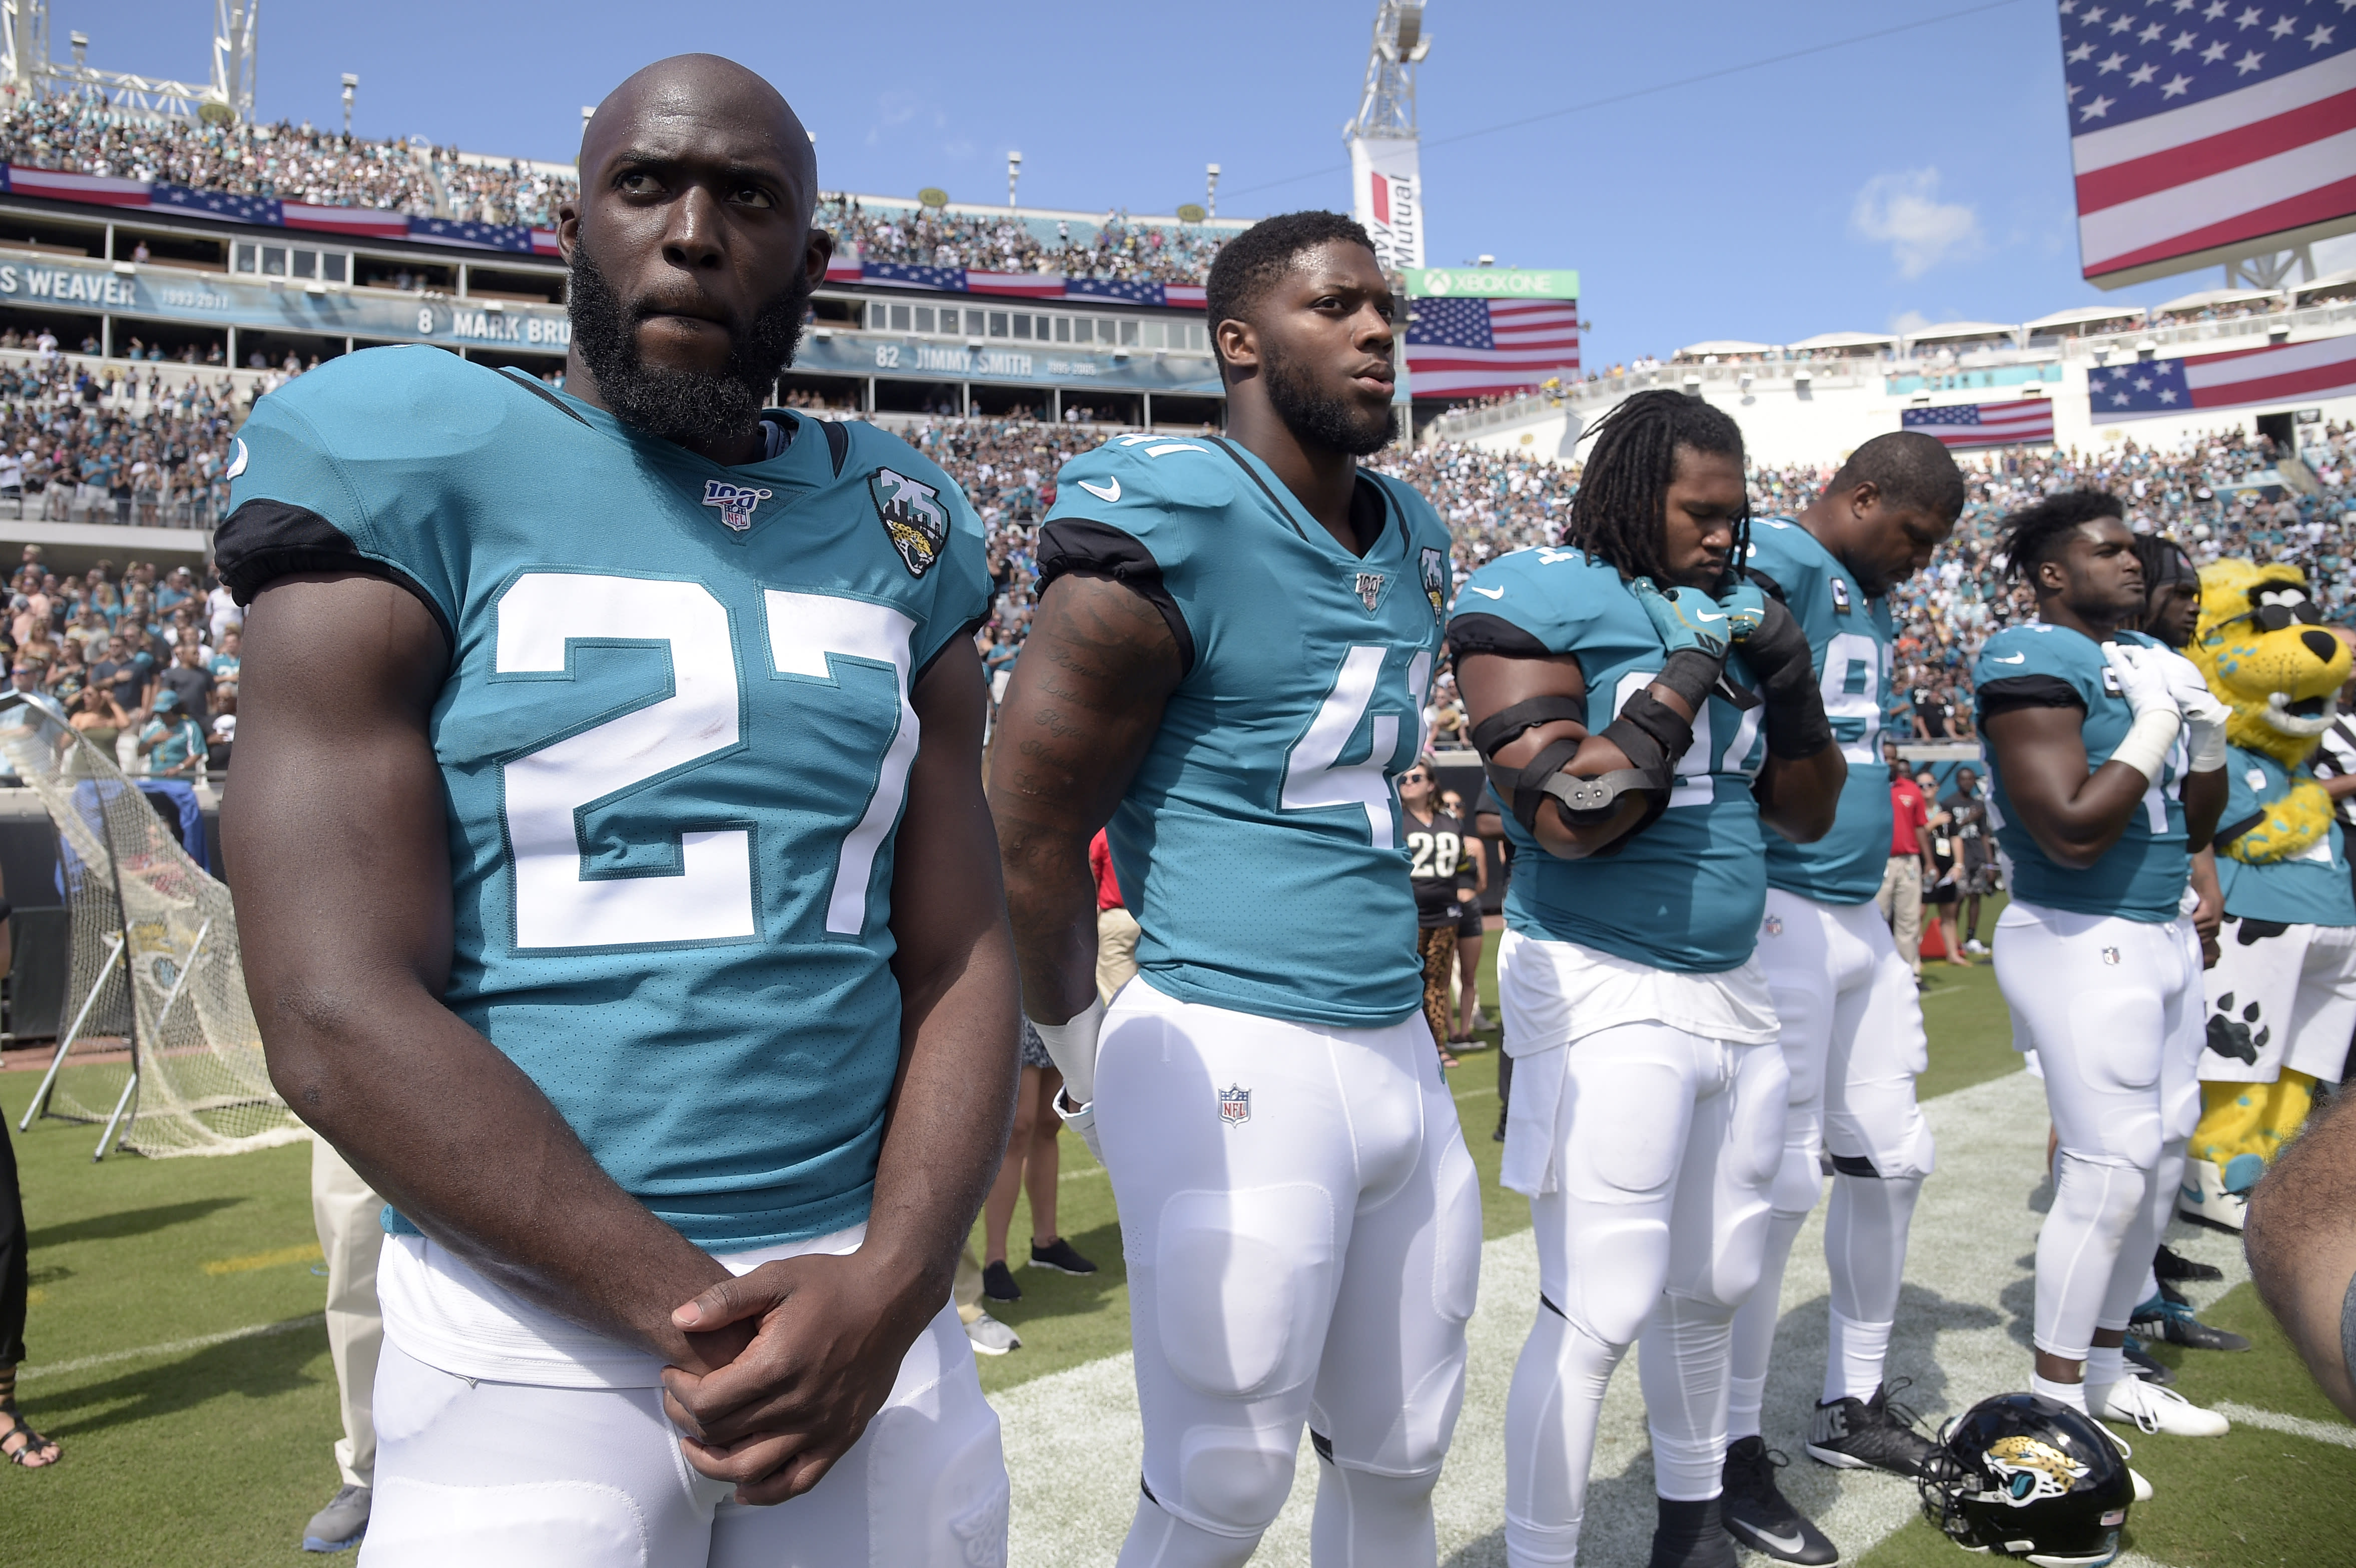 FILE - Jacksonville Jaguars running back Leonard Fournette (27) and defensive end Josh Allen (41) stand on the sideline for the playing of the national anthem before an NFL football game against the New Orleans Saints Sunday, Oct. 13, 2019, in Jacksonville, Fla. The Jacksonville Jaguars have waived running back Leonard Fournette, a stunning decision that gets the team closer to purging Tom Coughlin's tenure.(AP Photo/Phelan M. Ebenhack, File)